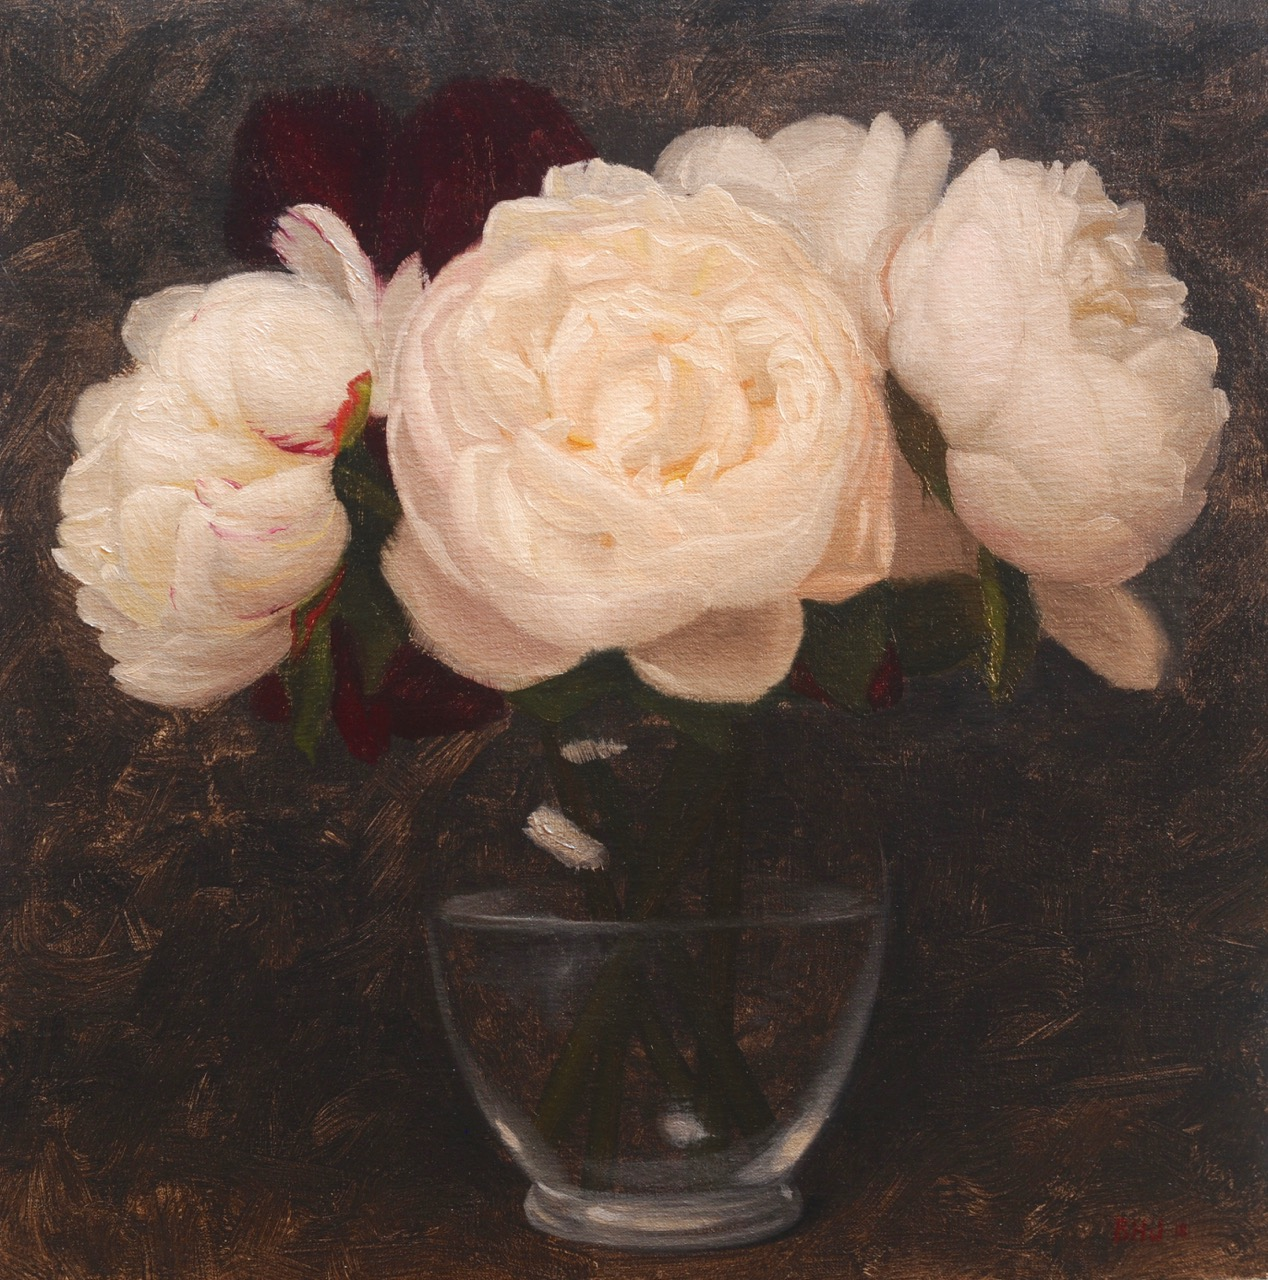 White Peonies Bouquet by Brendan Johnston, 2018, oil on linen, 14 x 14 in, $1,400